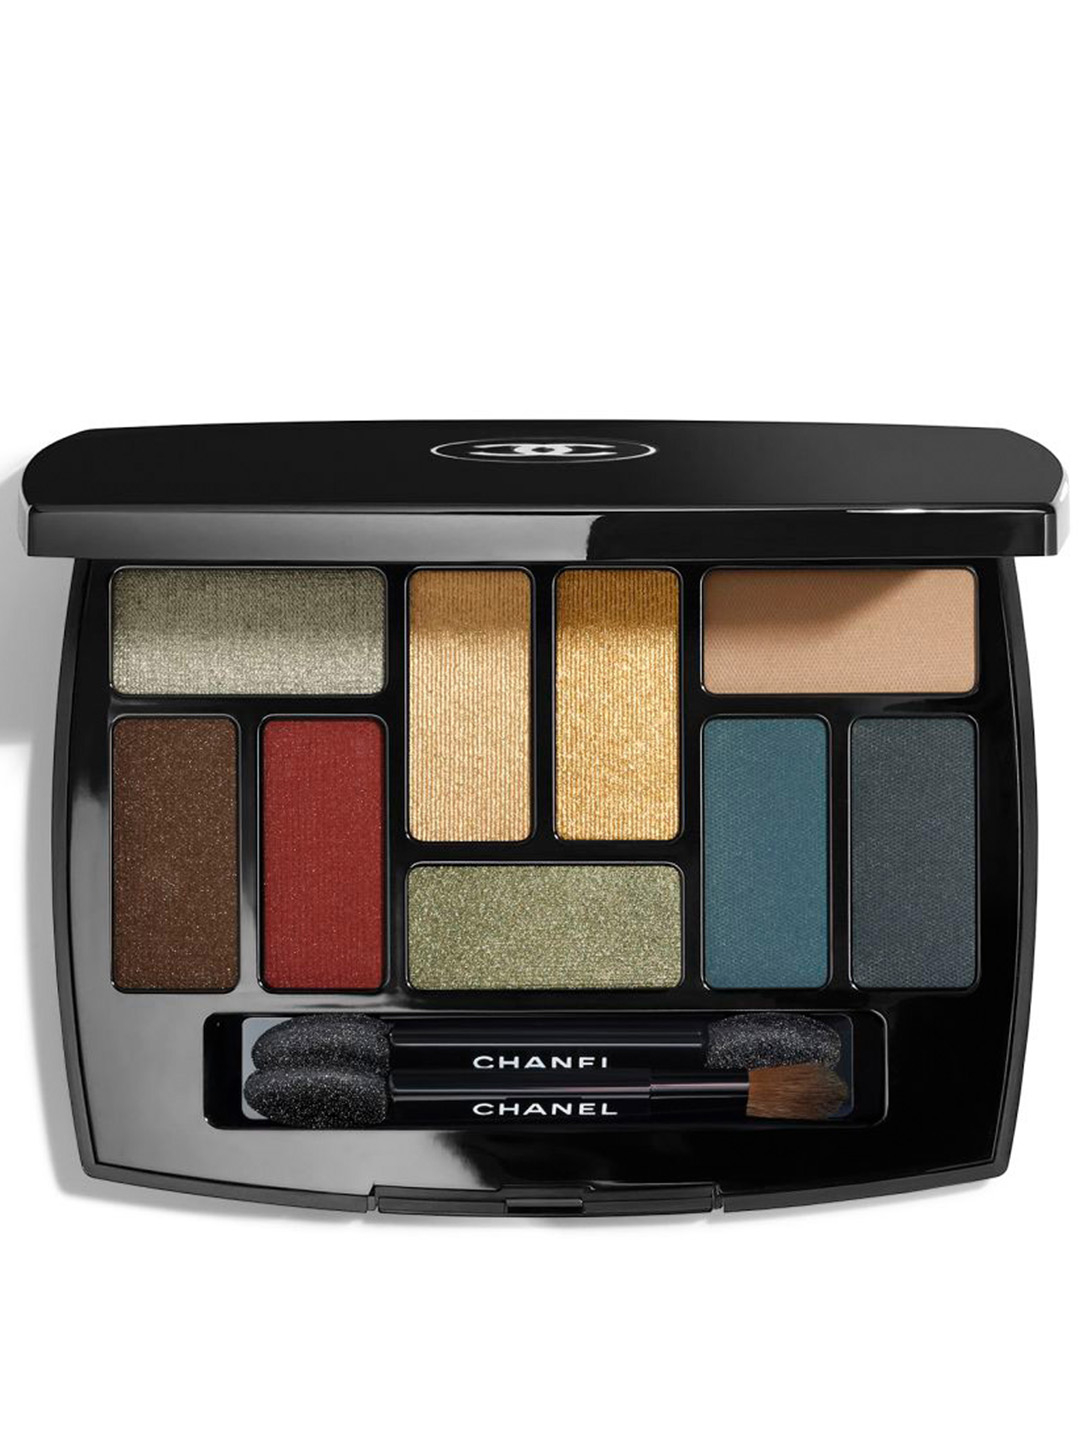 CHANEL Les 9 Ombres - Limited Edition Beauty Multi